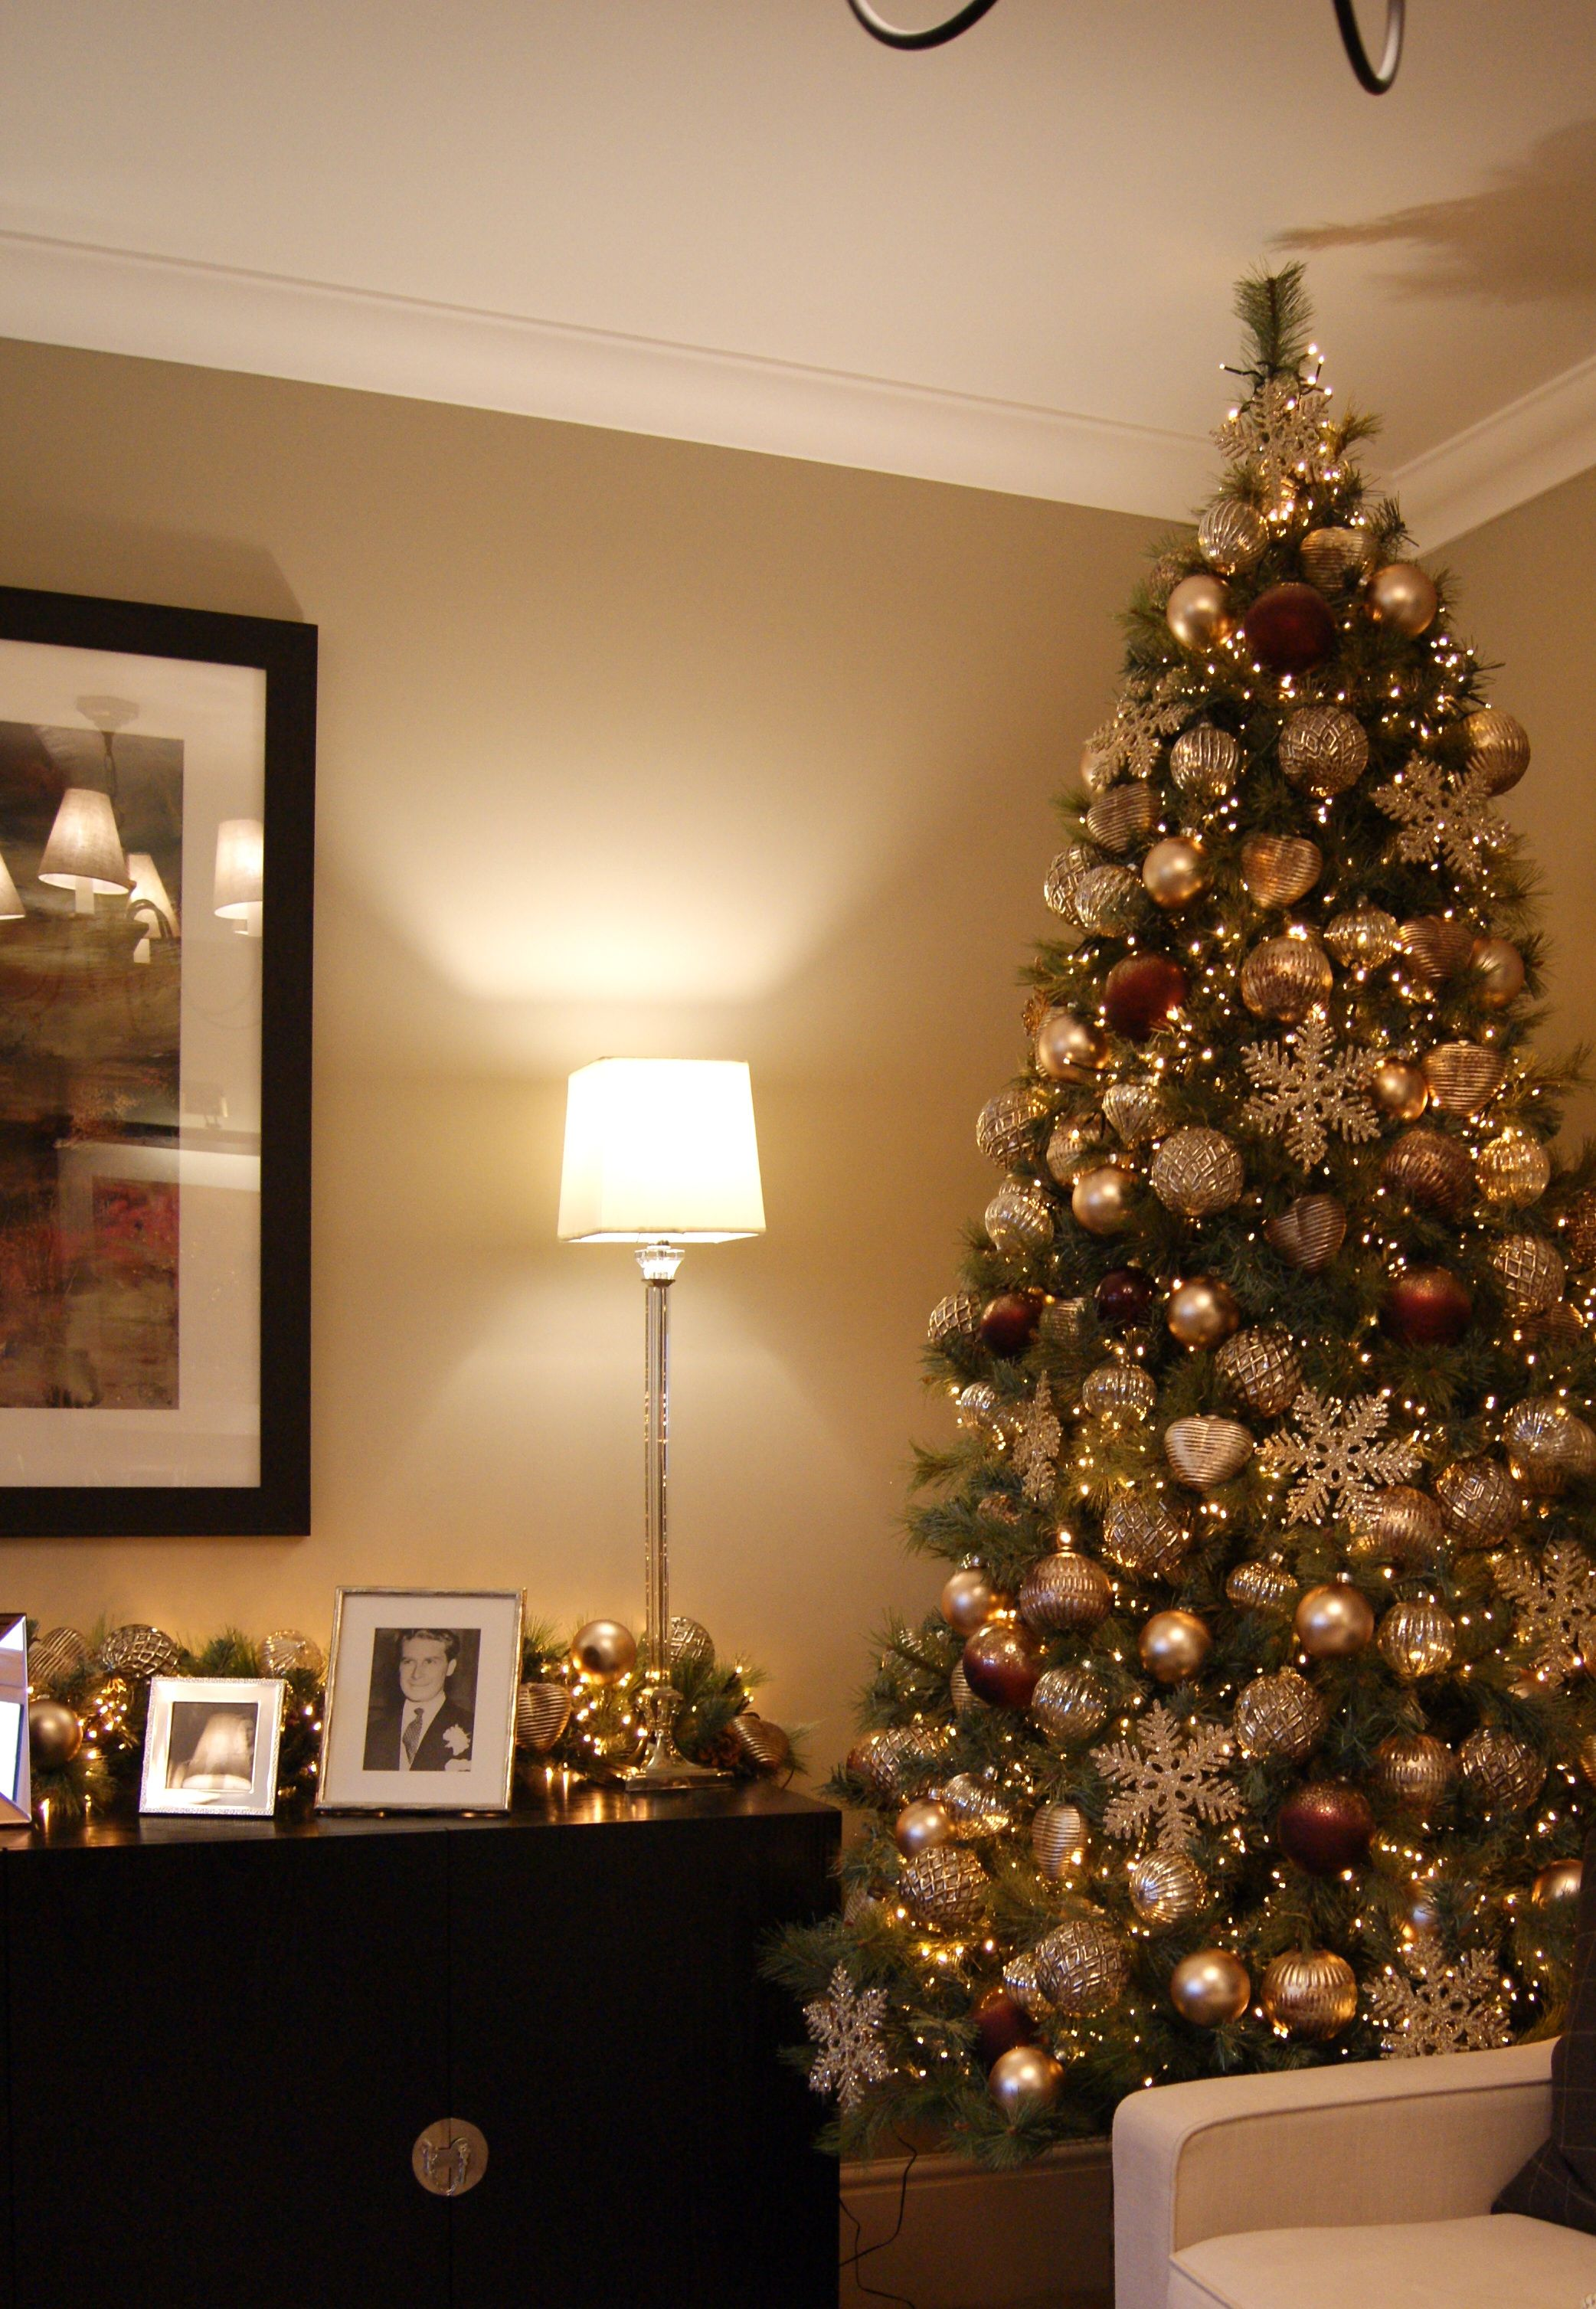 This Large Tree Is Full Of Lights And Baubles To Create A Beautiful Festive Statement Piece Large Christmas Tree Design Cashmere Christmas Tree Holiday Decor